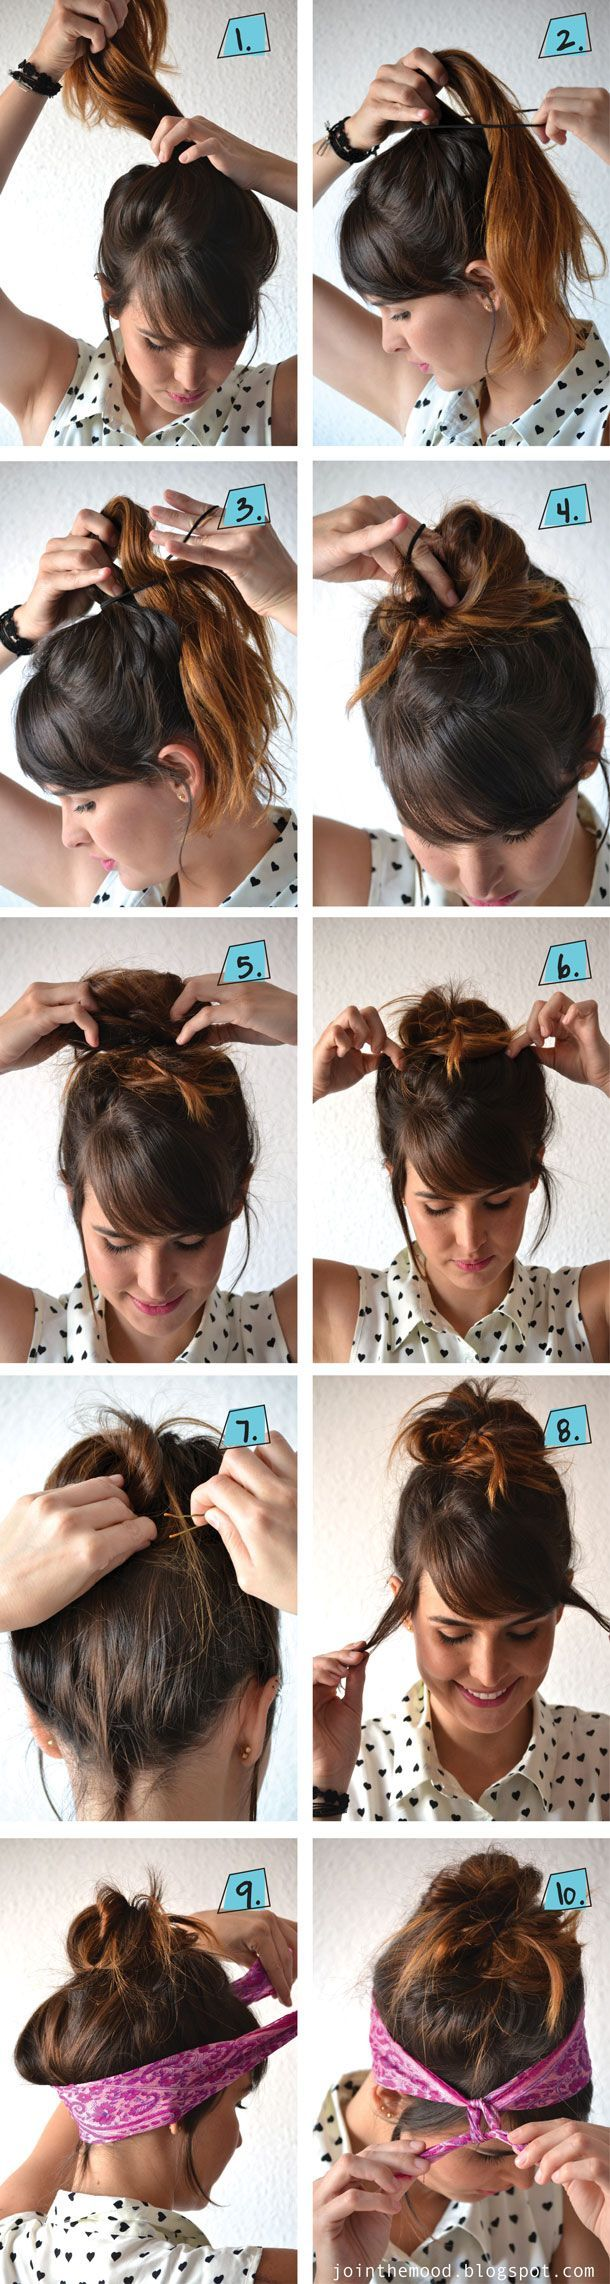 hair style for round head 64 best bandana hairstyles images on 6502 | e9c98591d85ceda9541f2b3c615d6502 bandana hair tutorials hairstyle tutorials